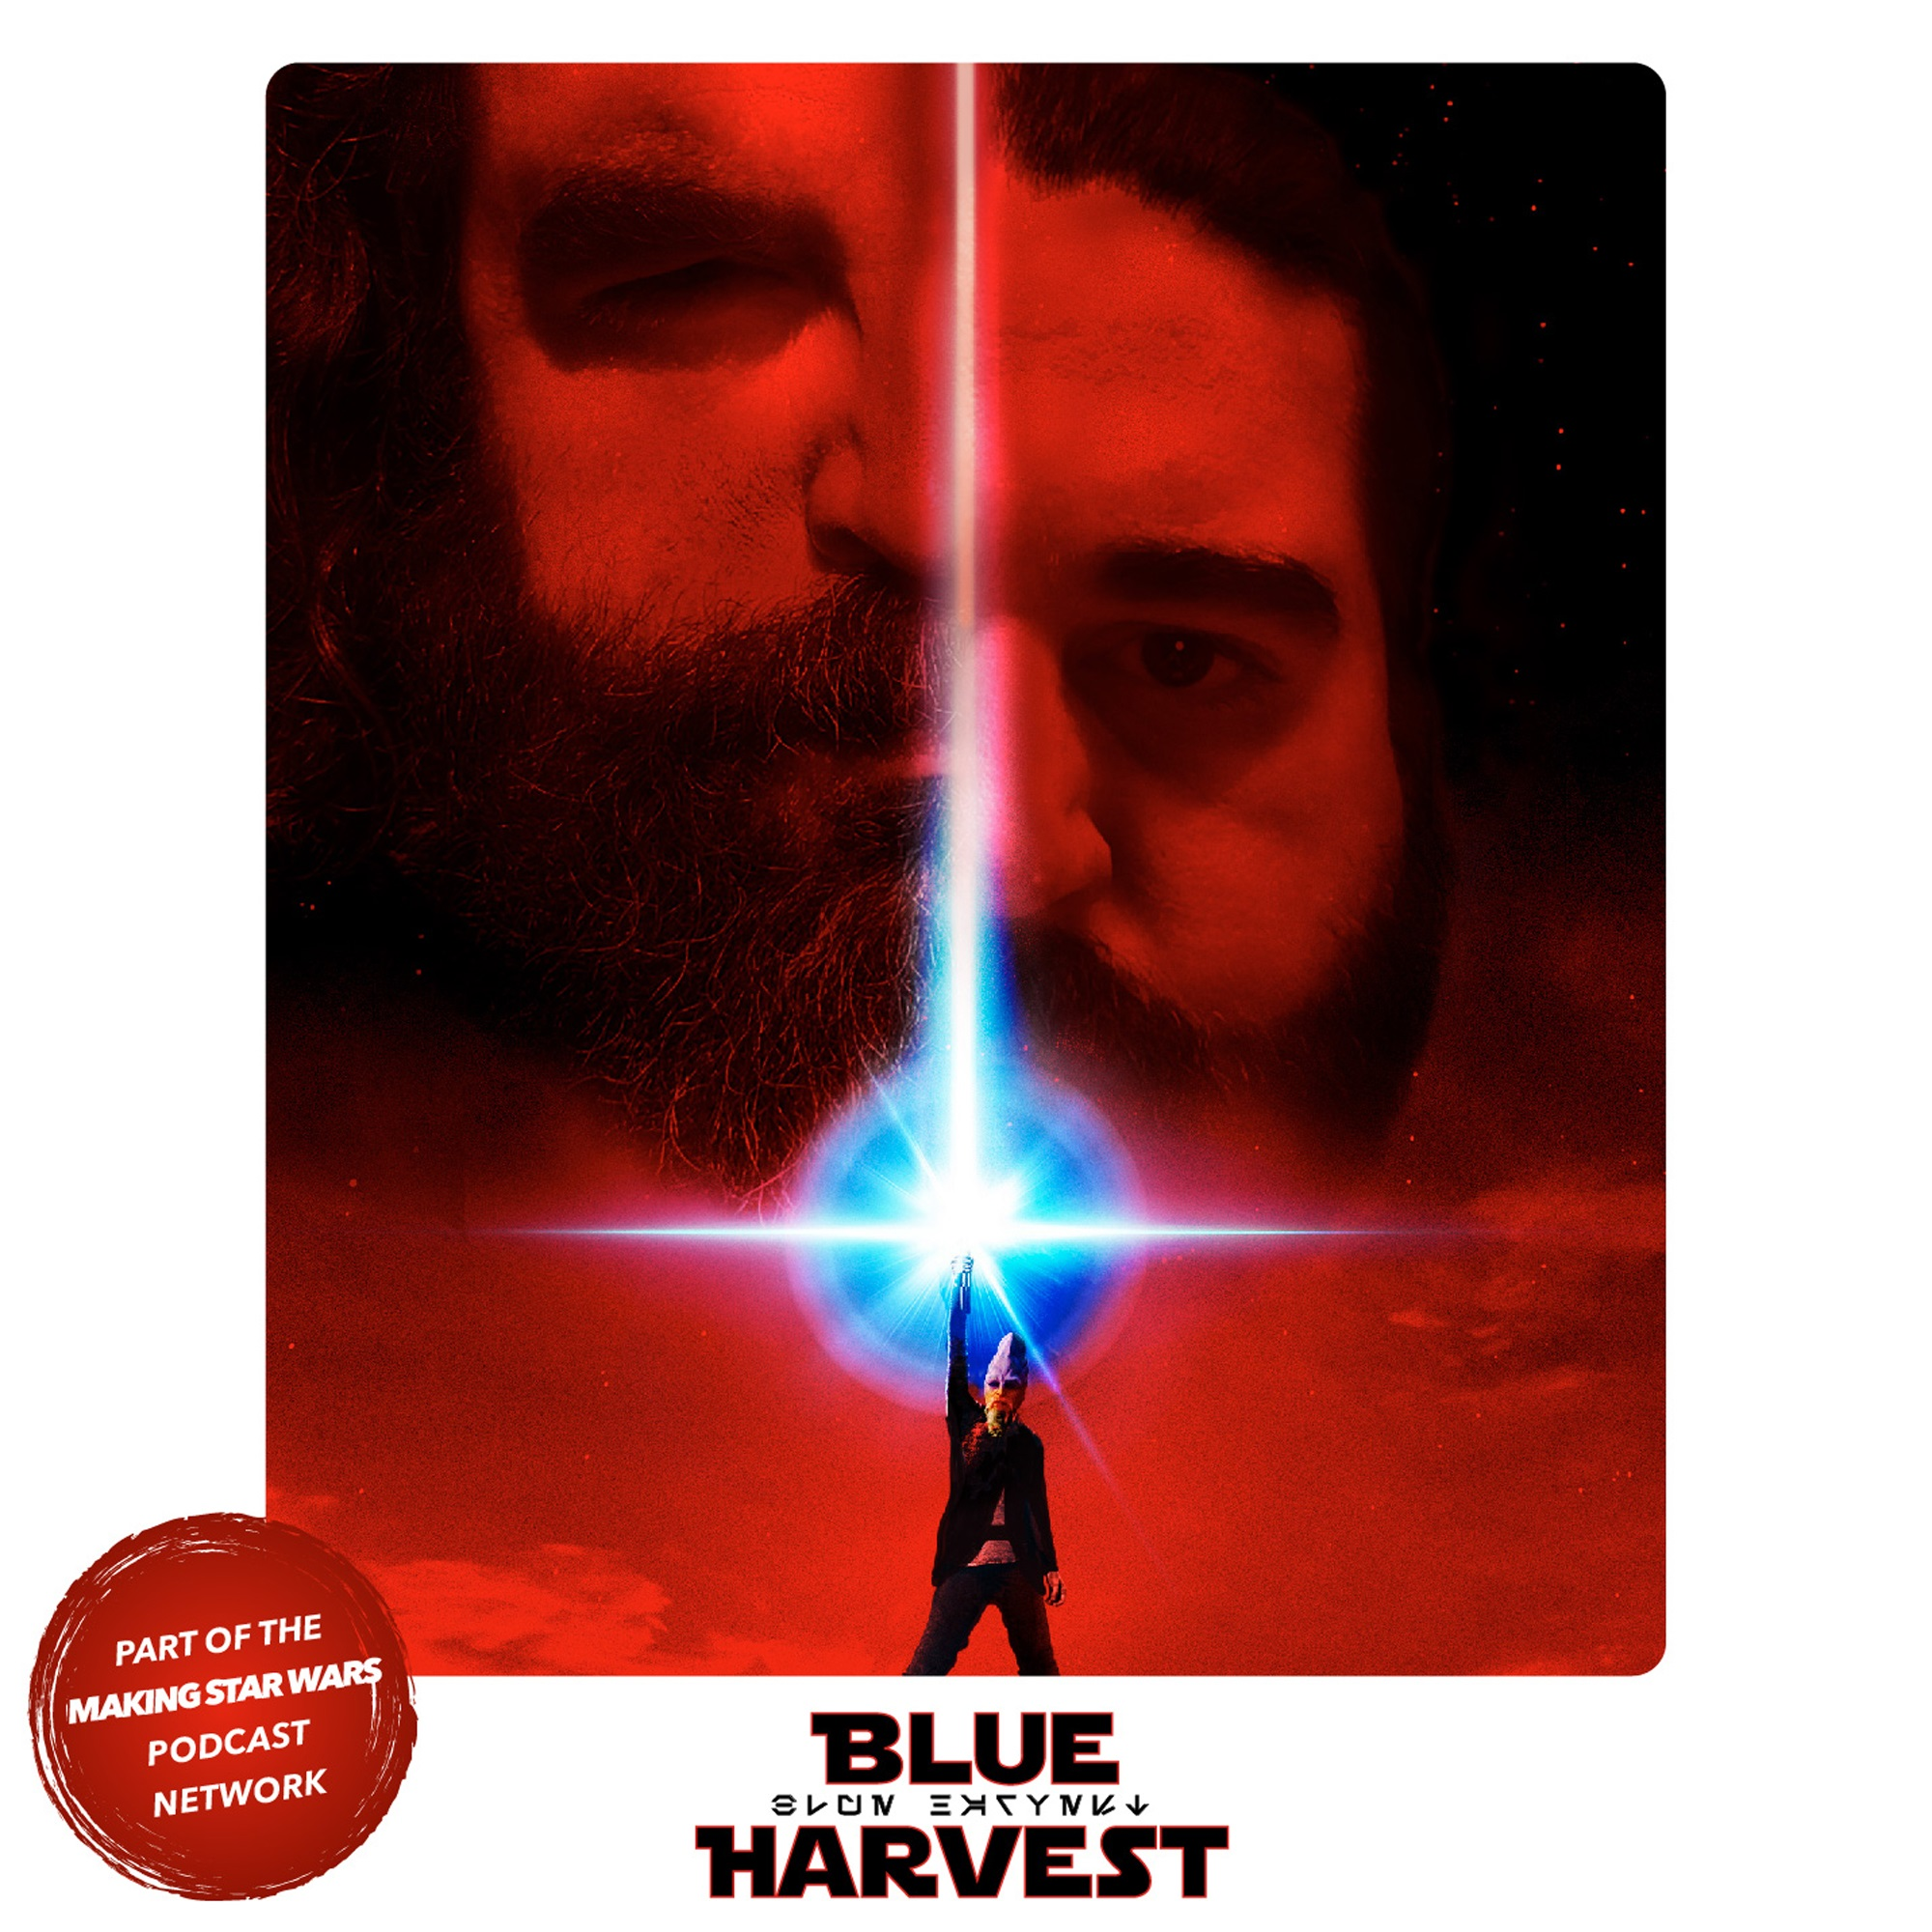 BLUE HARVEST: A STAR WARS PODCAST